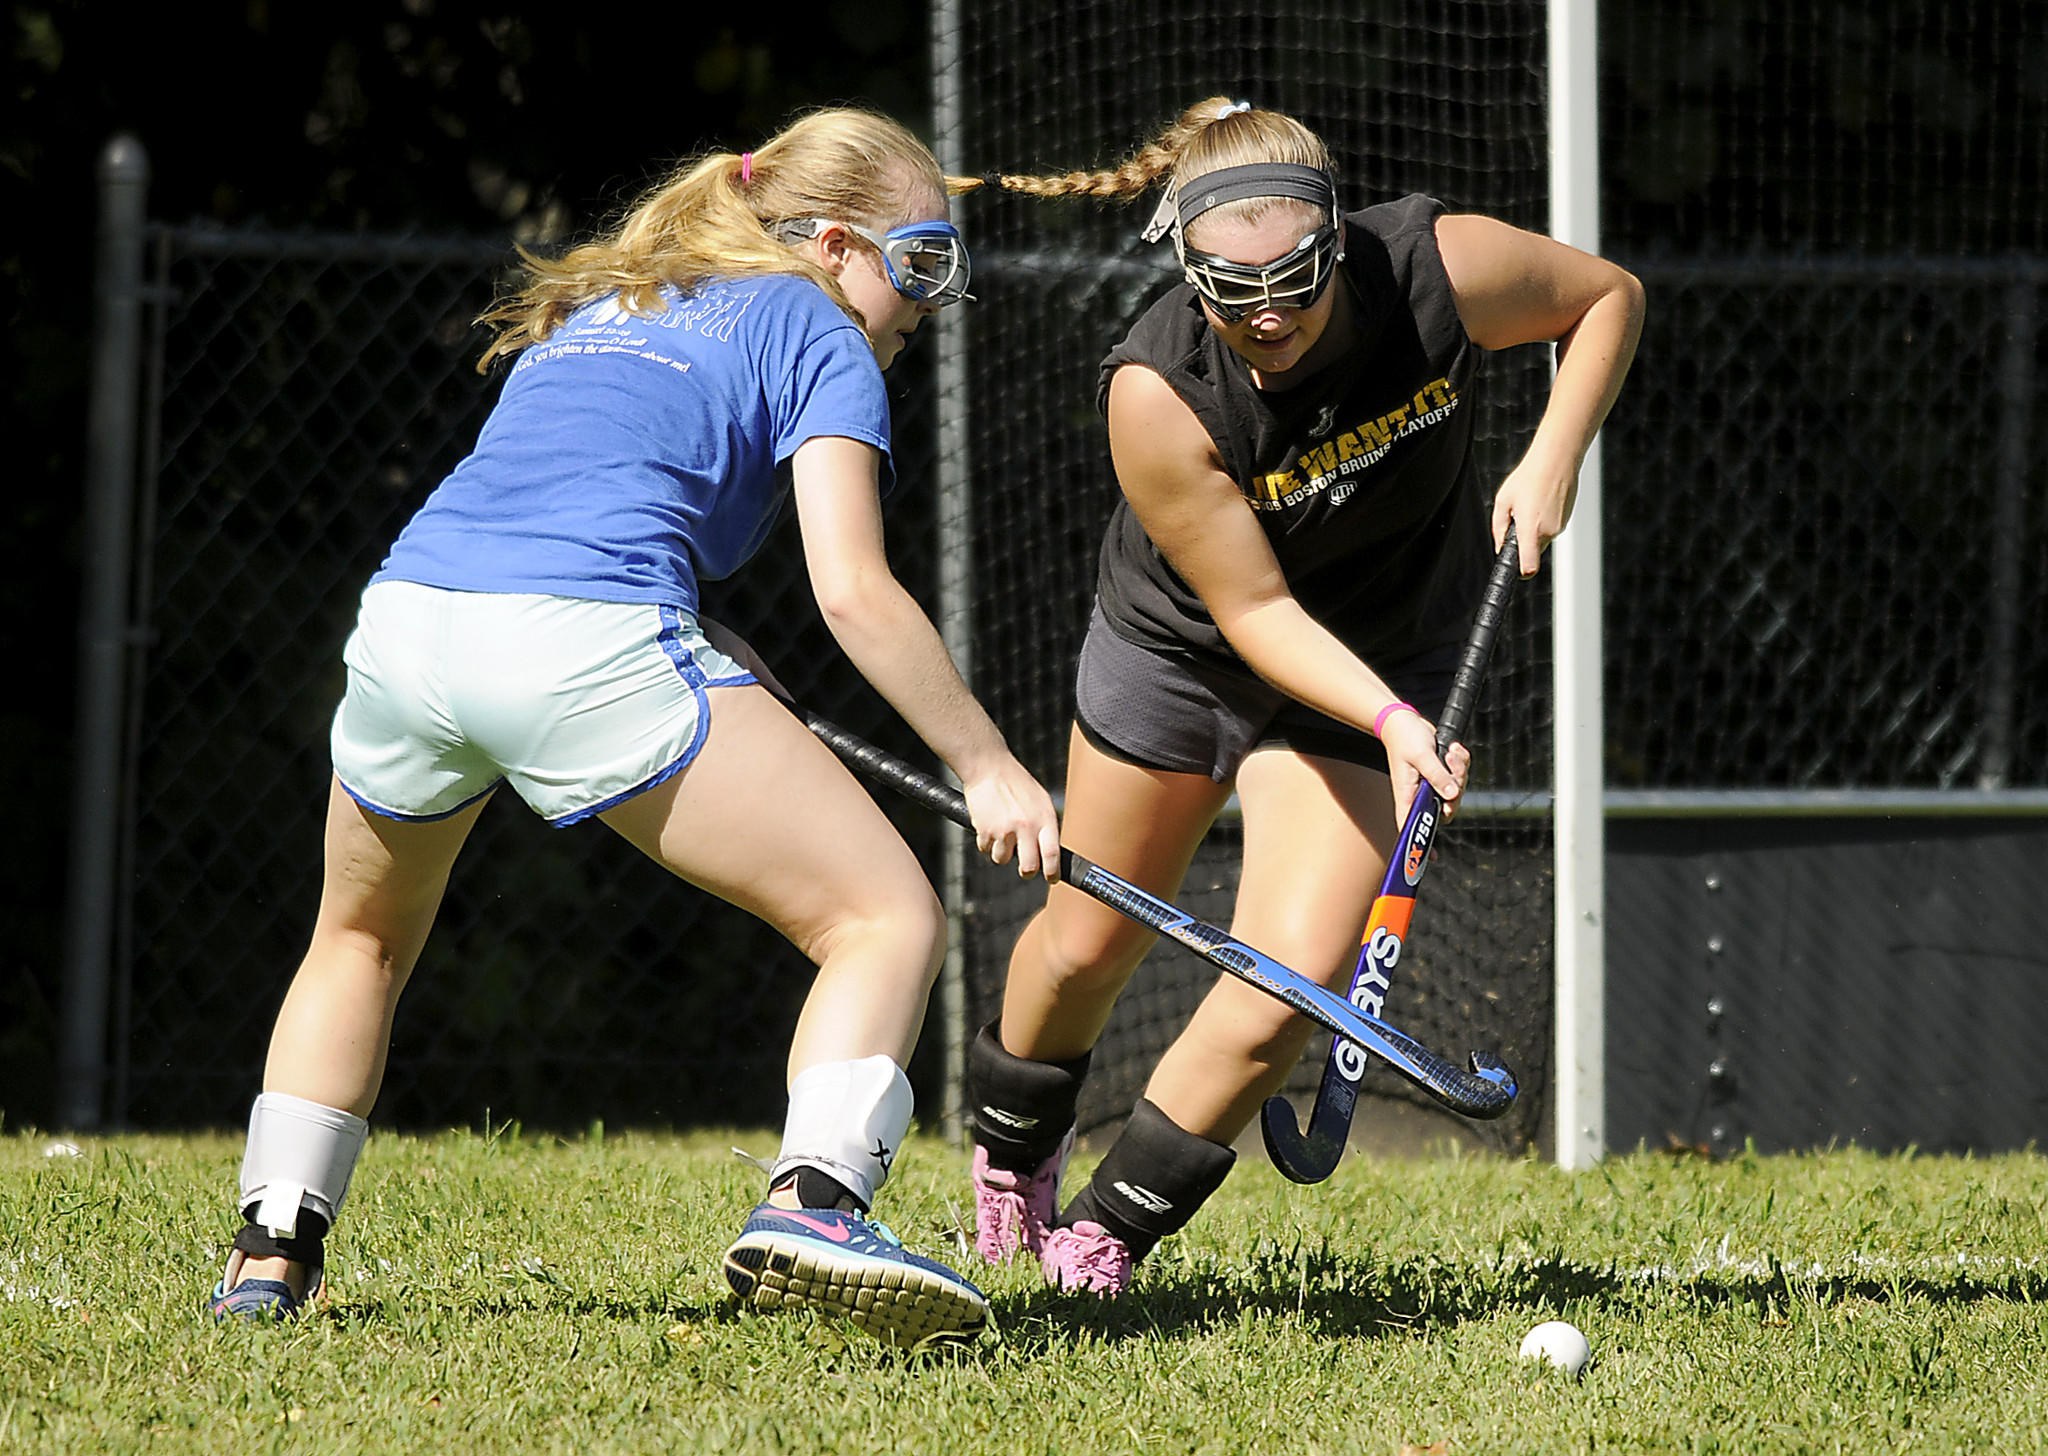 (L to R) Rylee Clarkin and Natalie Heaney battle for control of the ball as the East Catholic field hockey team practiced Wednesday afternoon in preparation for teir first game as a varsity program.